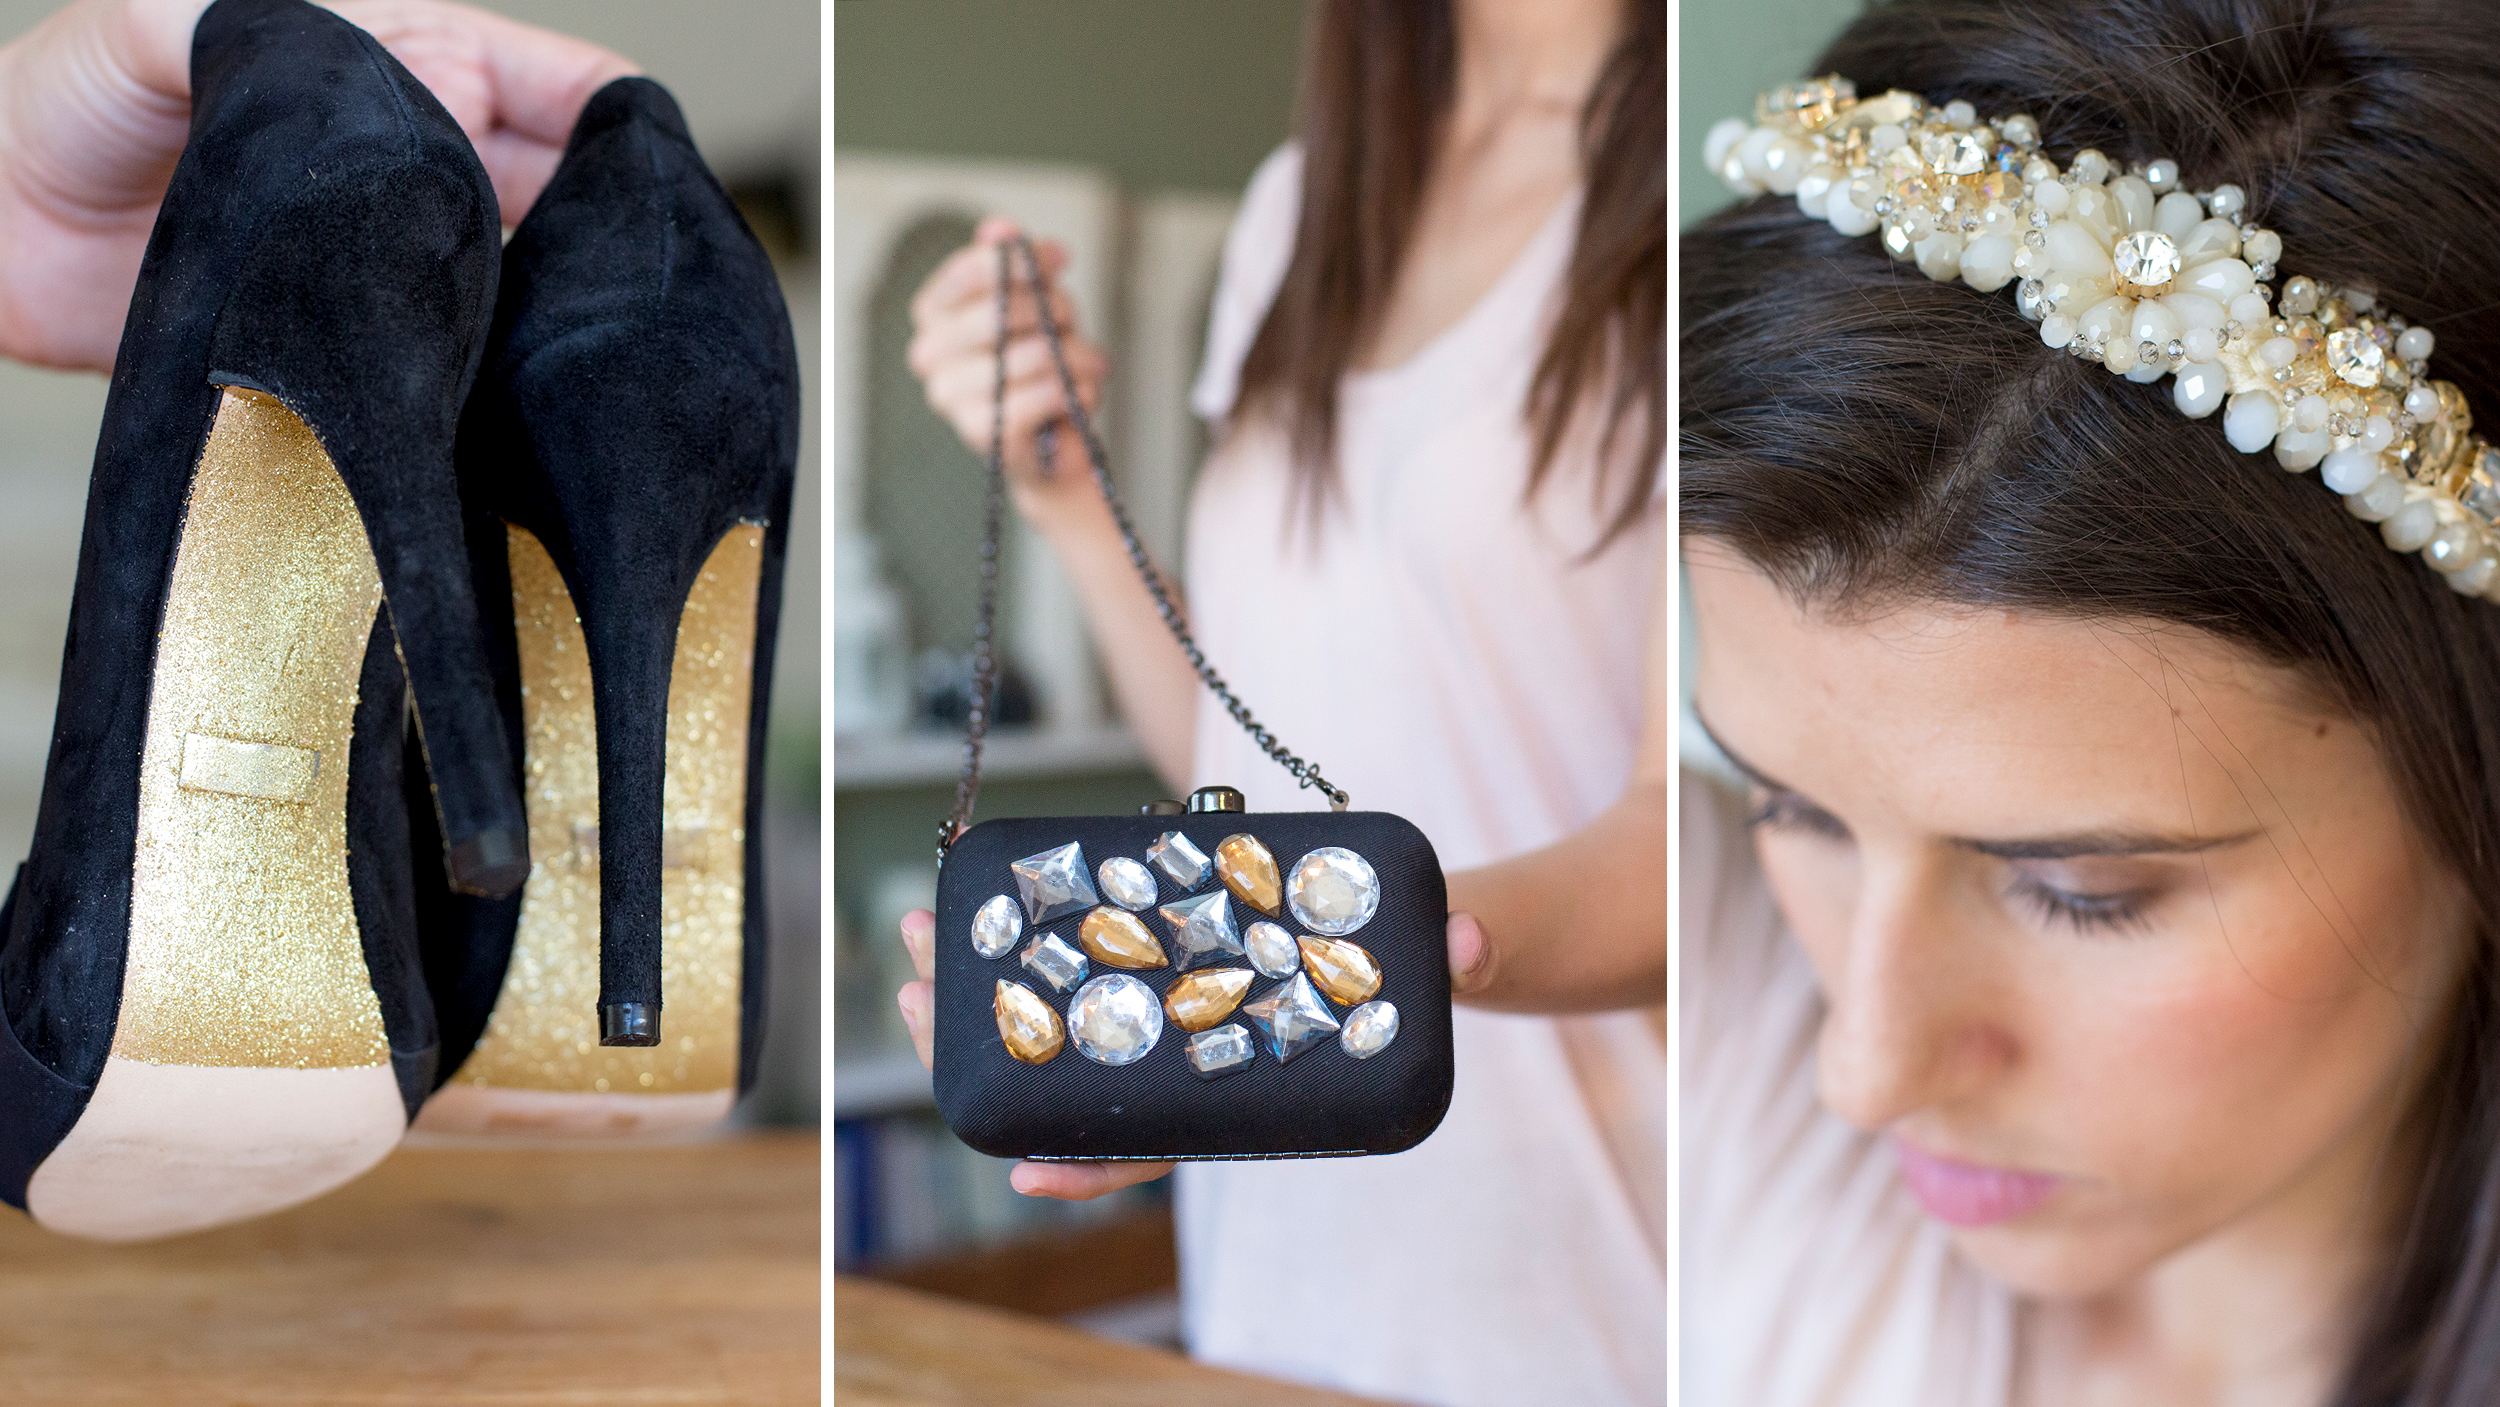 3 simple ways to DIY your New Year's Eve outfit